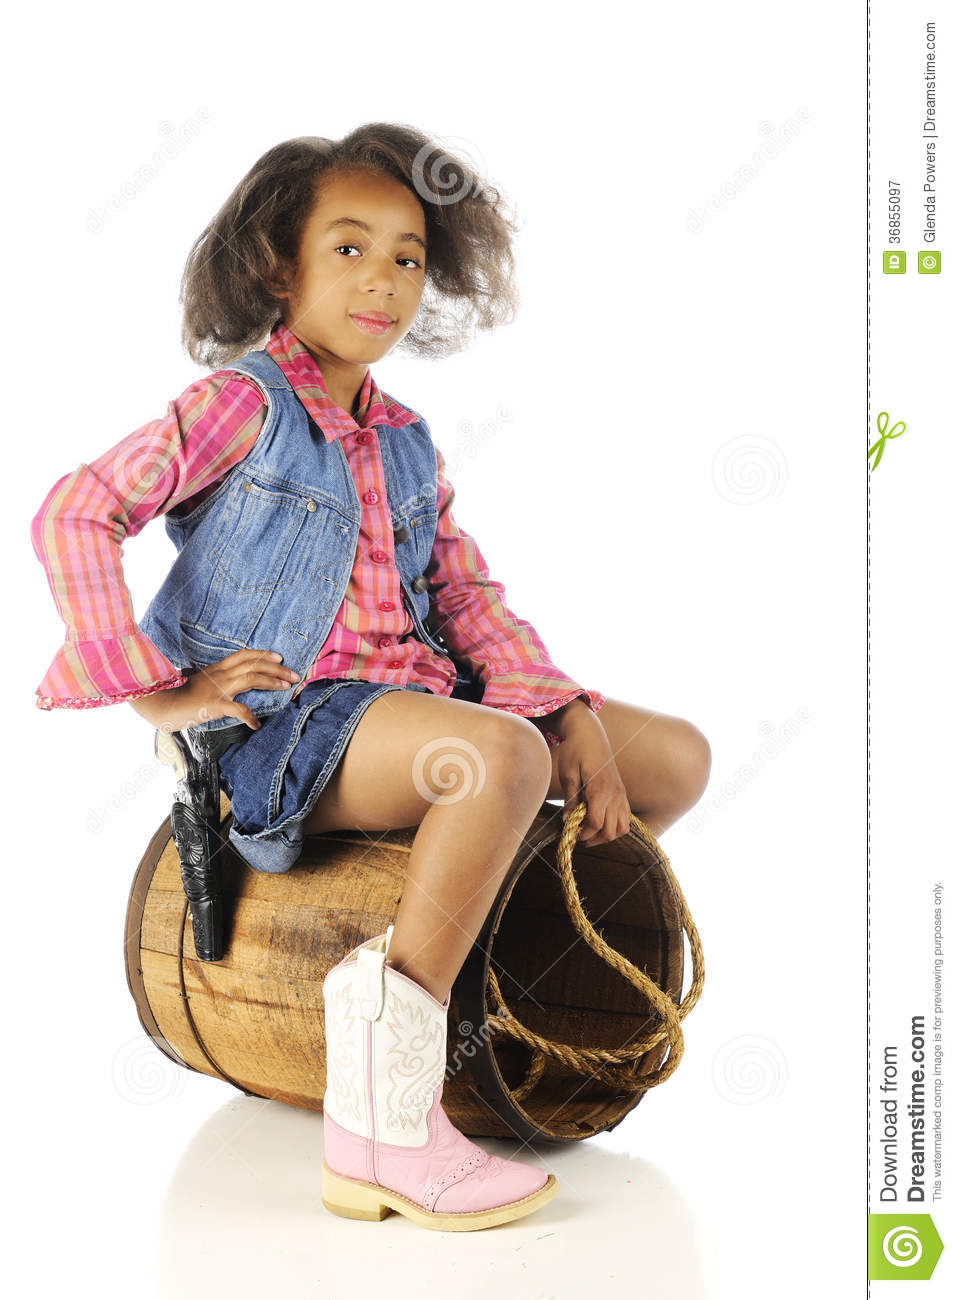 young elementary cowgirl riding on an old barrel. On a white ...: dreamstime.com/royalty-free-stock-photography-barrel-rider-young...